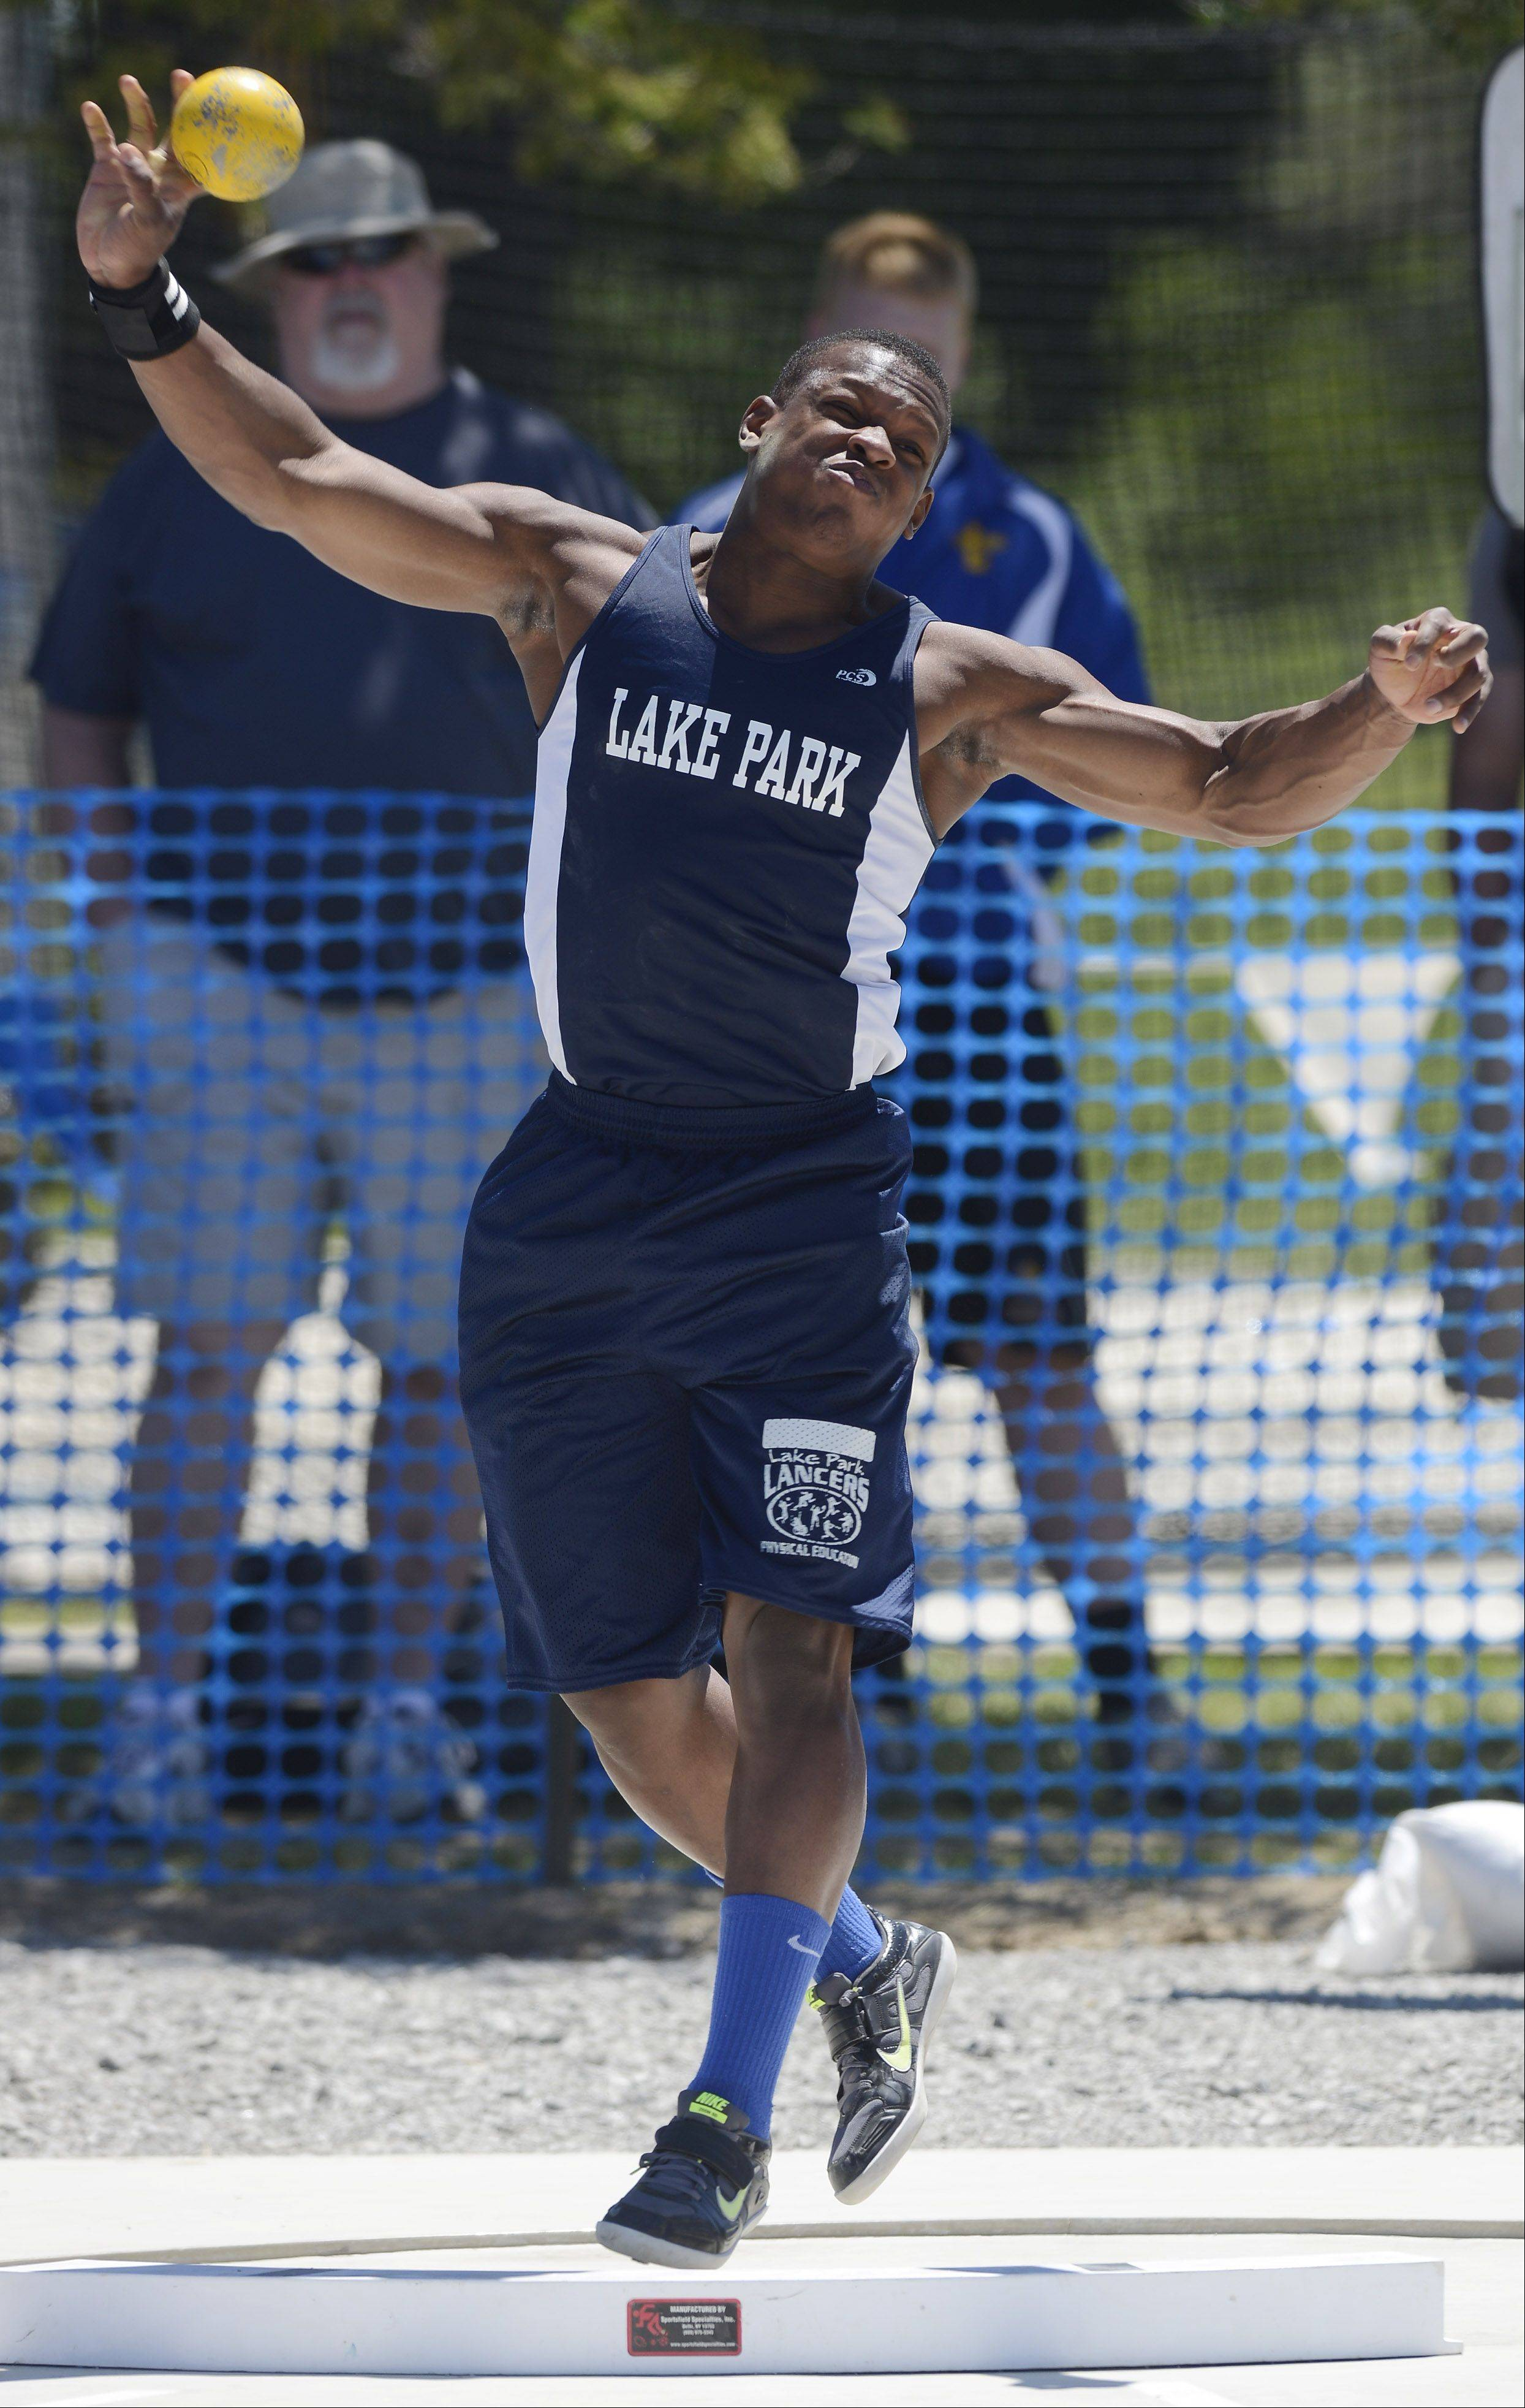 Lake Park's Curtwan Evans throws in the Class 3A shot put during the boys state track preliminaries in Charleston Friday.